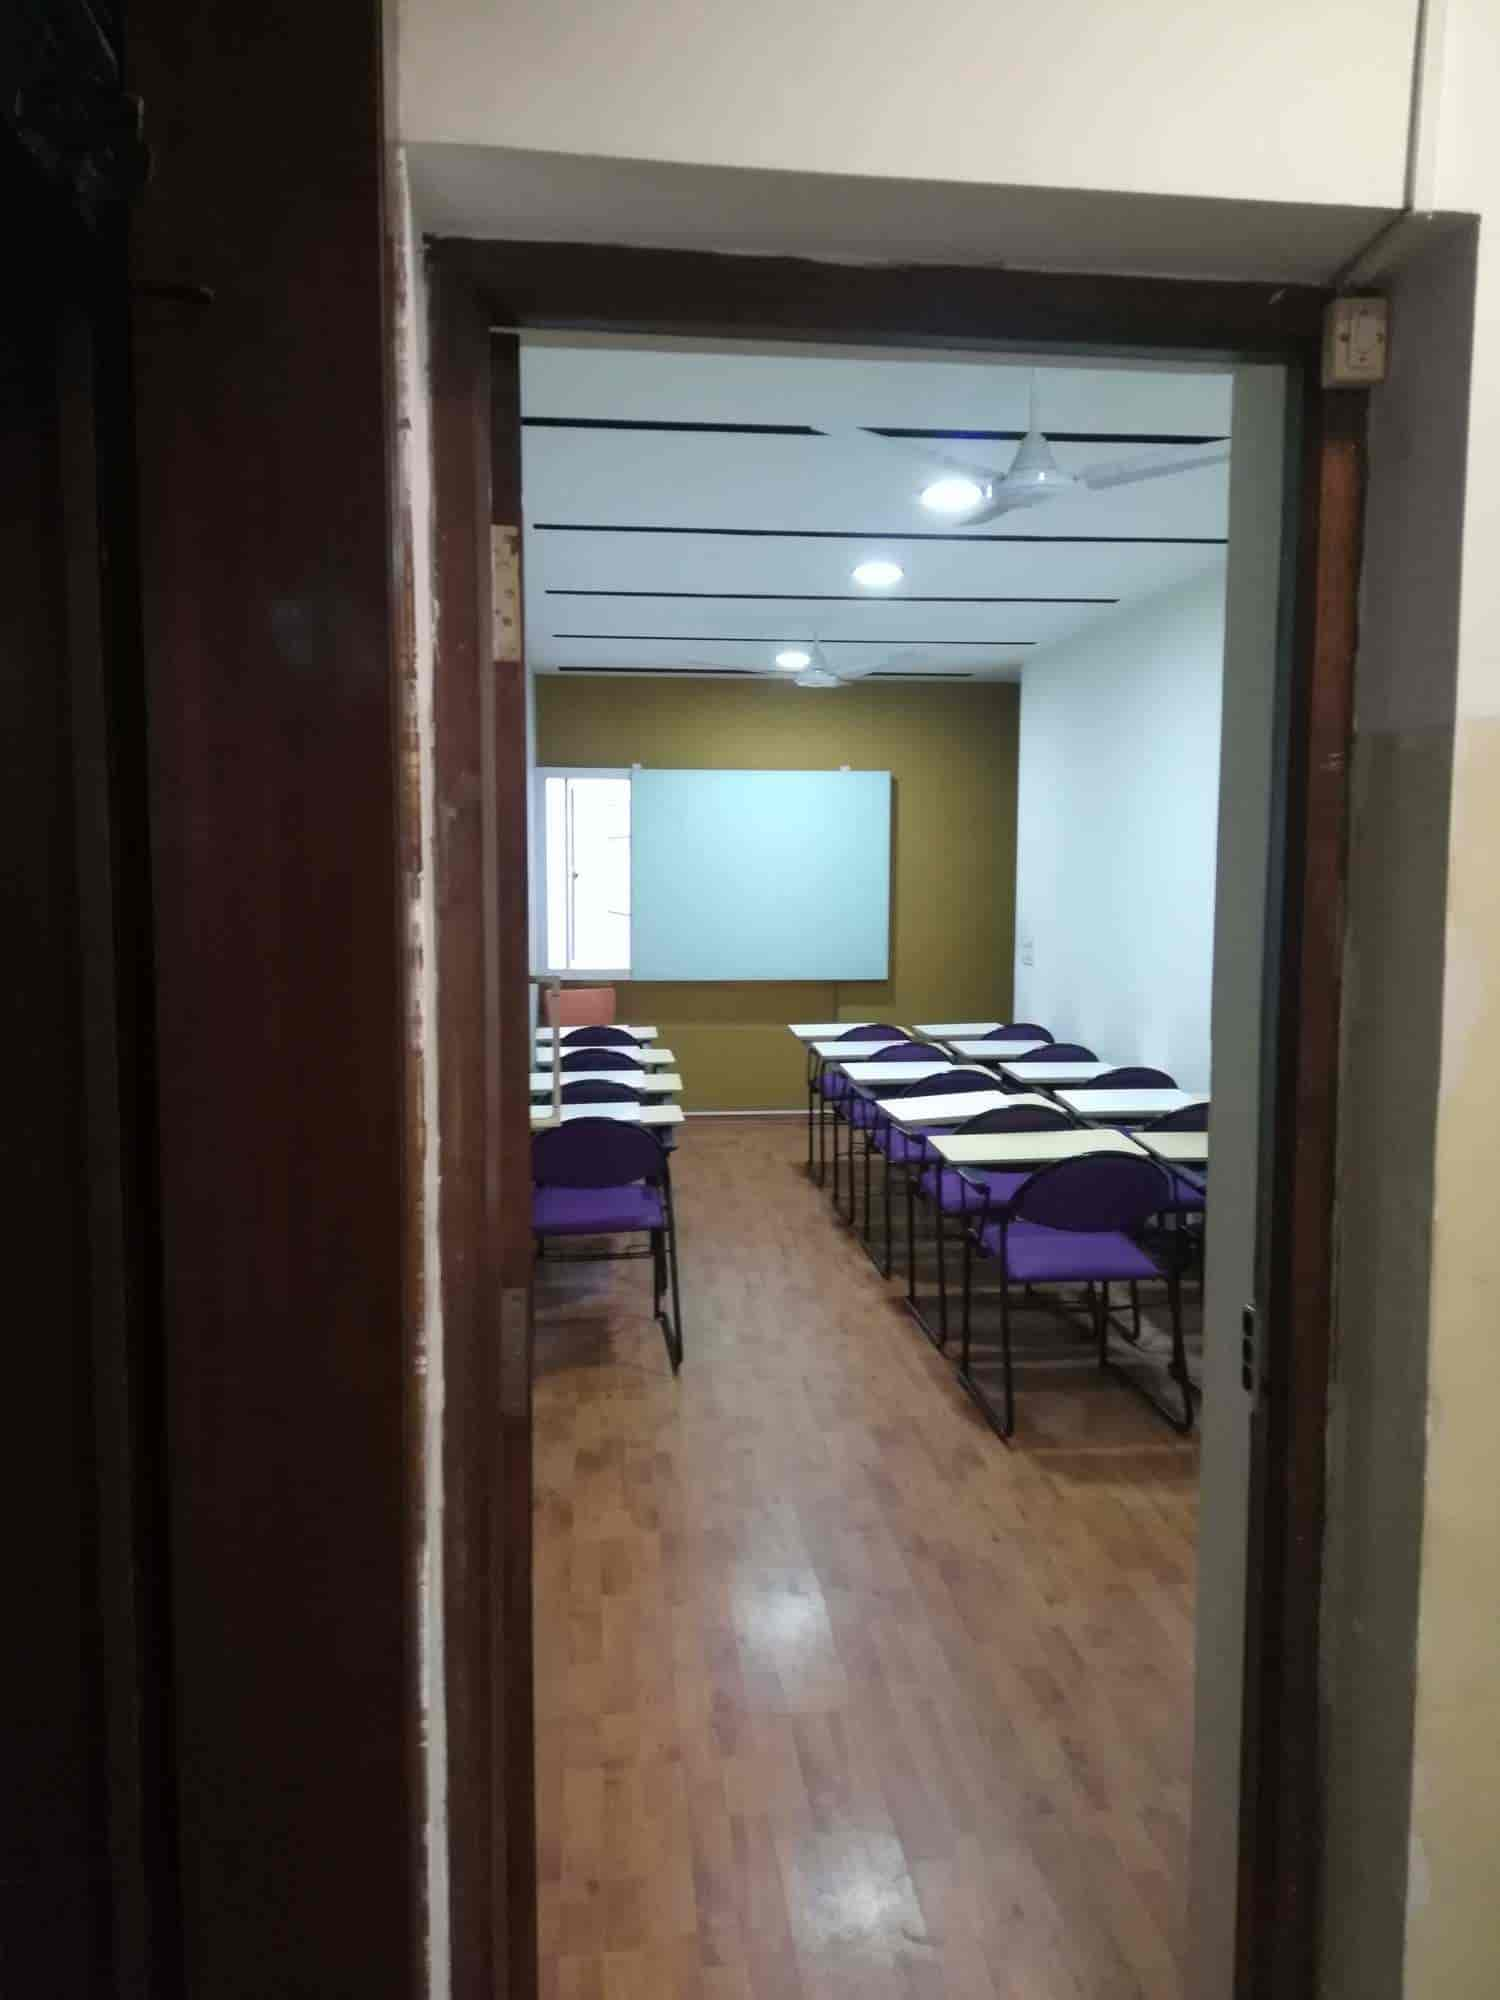 School Of Interior And Architecture, Jayamahal   Interior Decorators In  Bangalore   Justdial